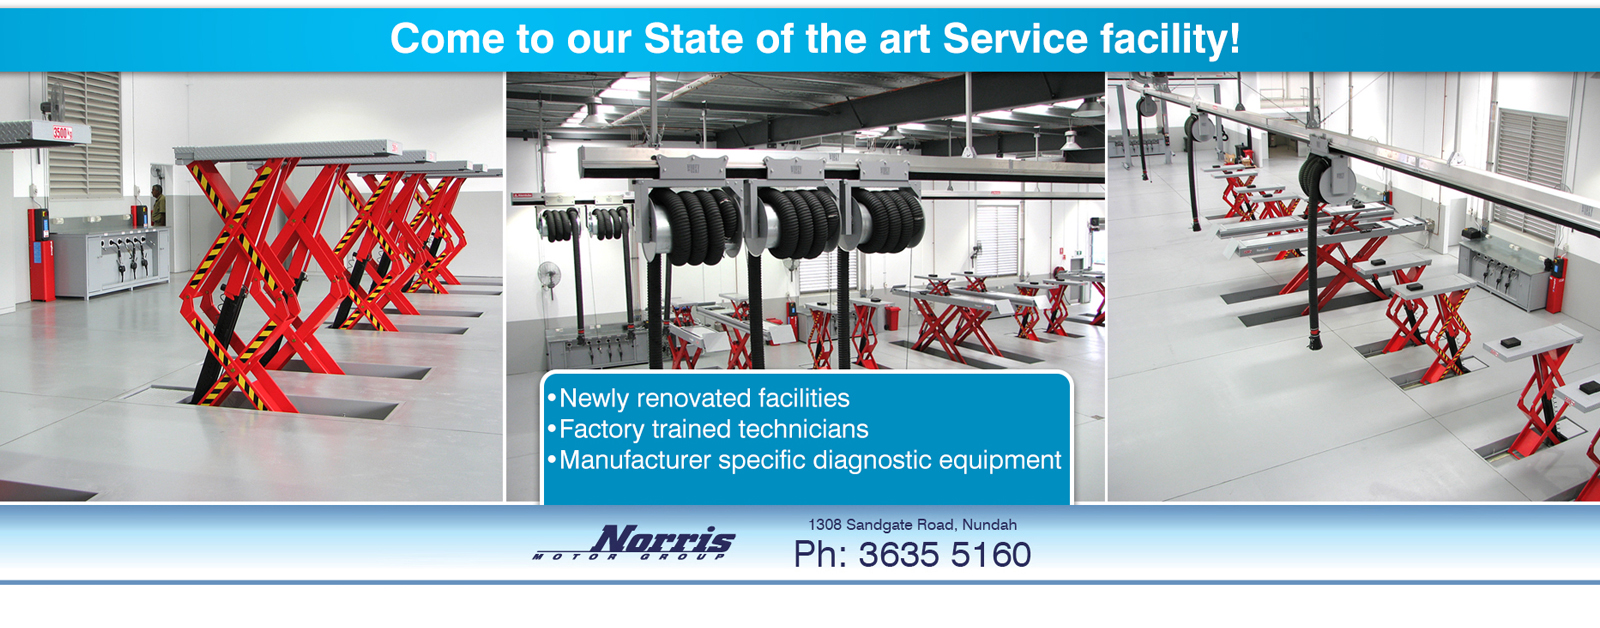 Come and visit our state of the art service facility at Nundah Suzuki Brisbane.